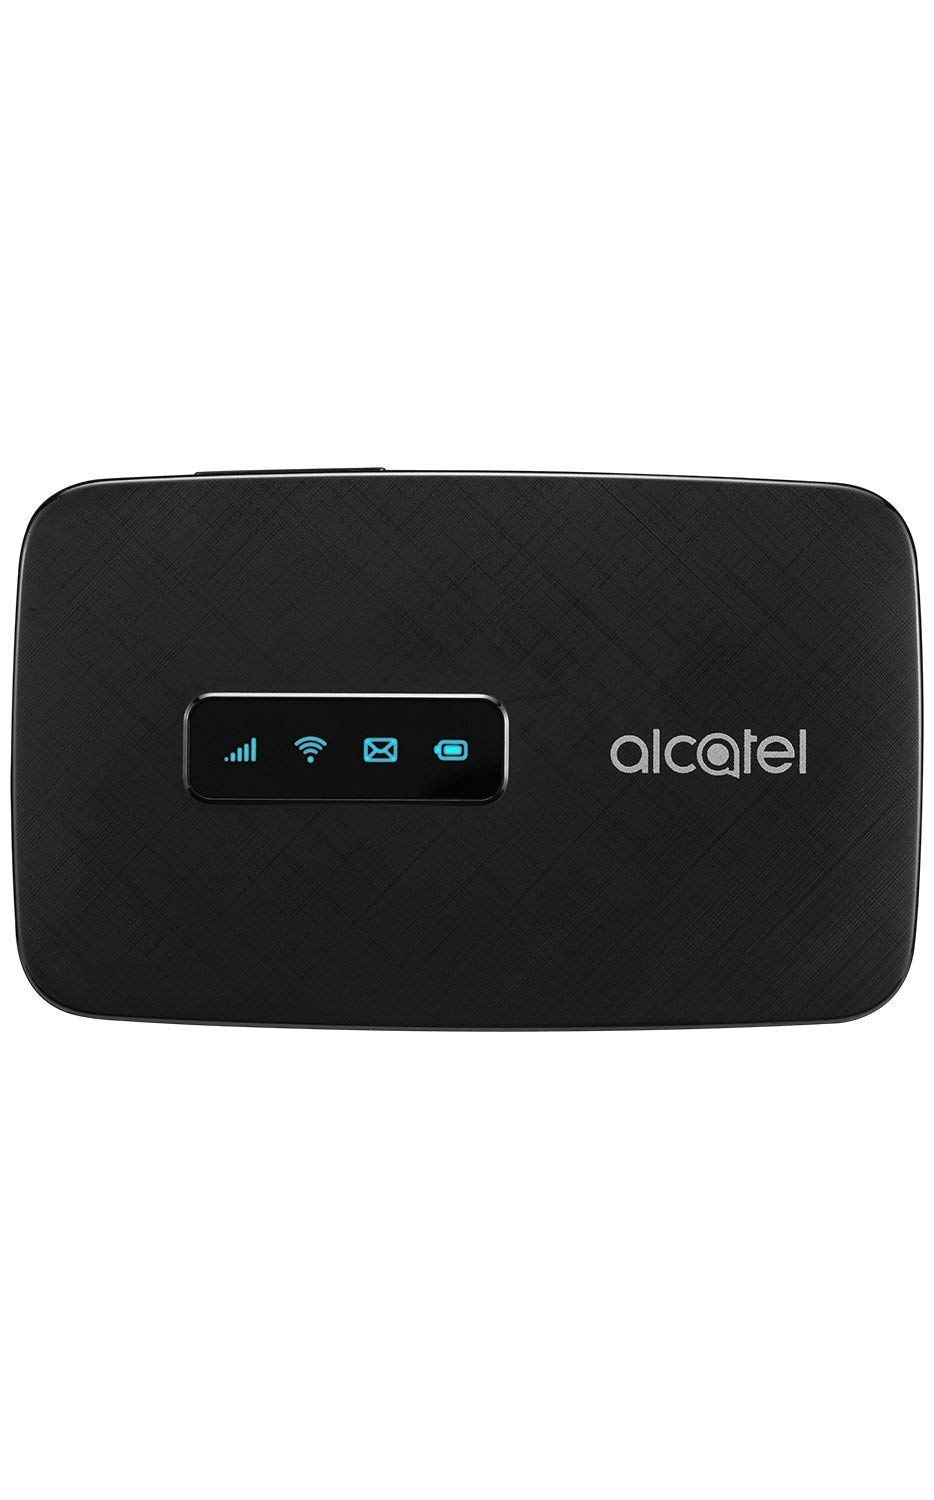 Alcatel LINKZONE 4G LTE Mobile Wi-Fi Hotspot T-Mobile by T-Mobile